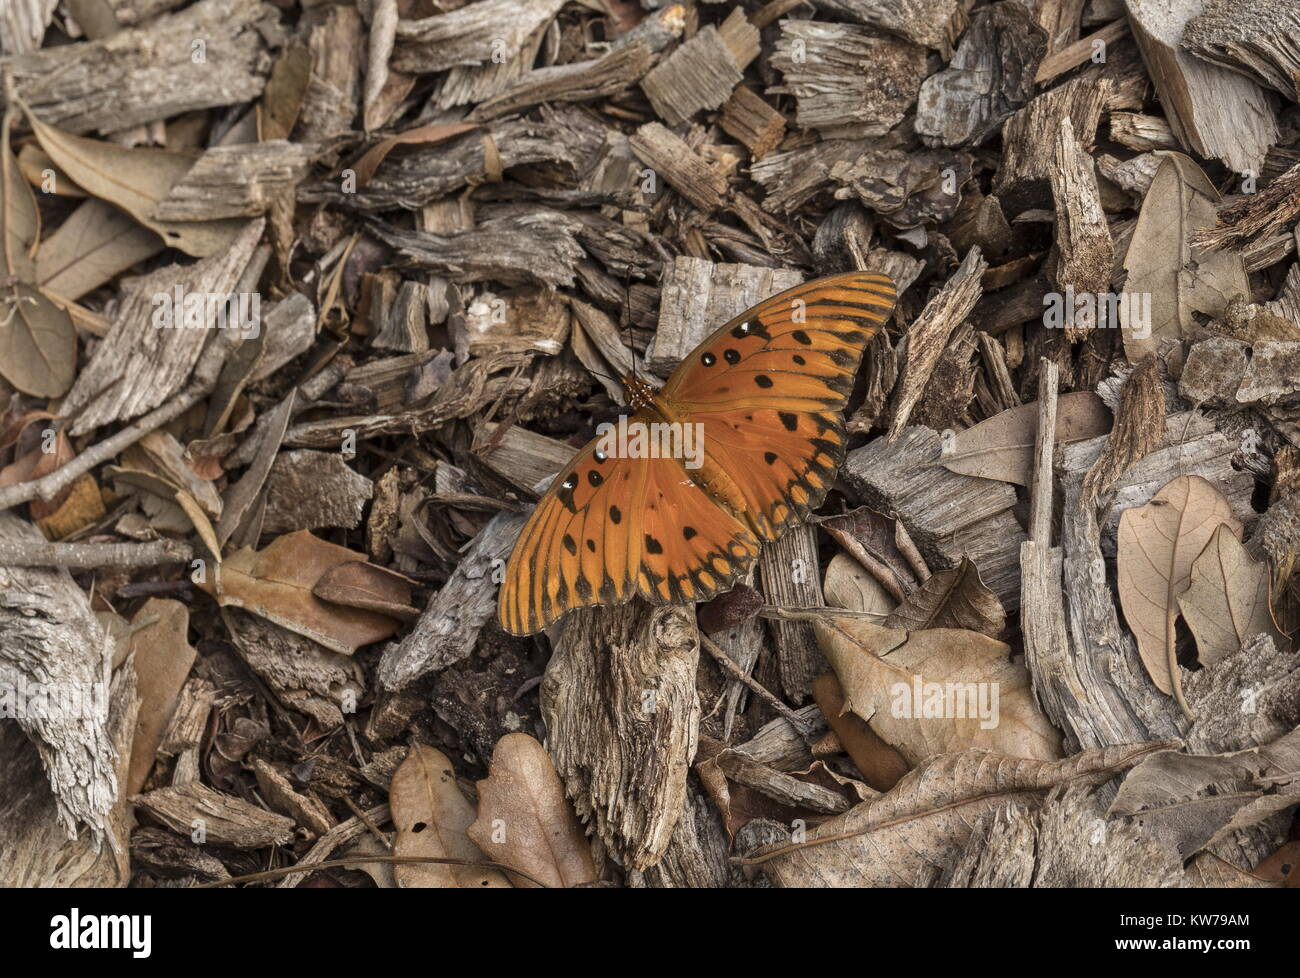 Gulf fritillary, Agraulis vanillae, basking on wood chippings in cool weather. Florida. - Stock Image